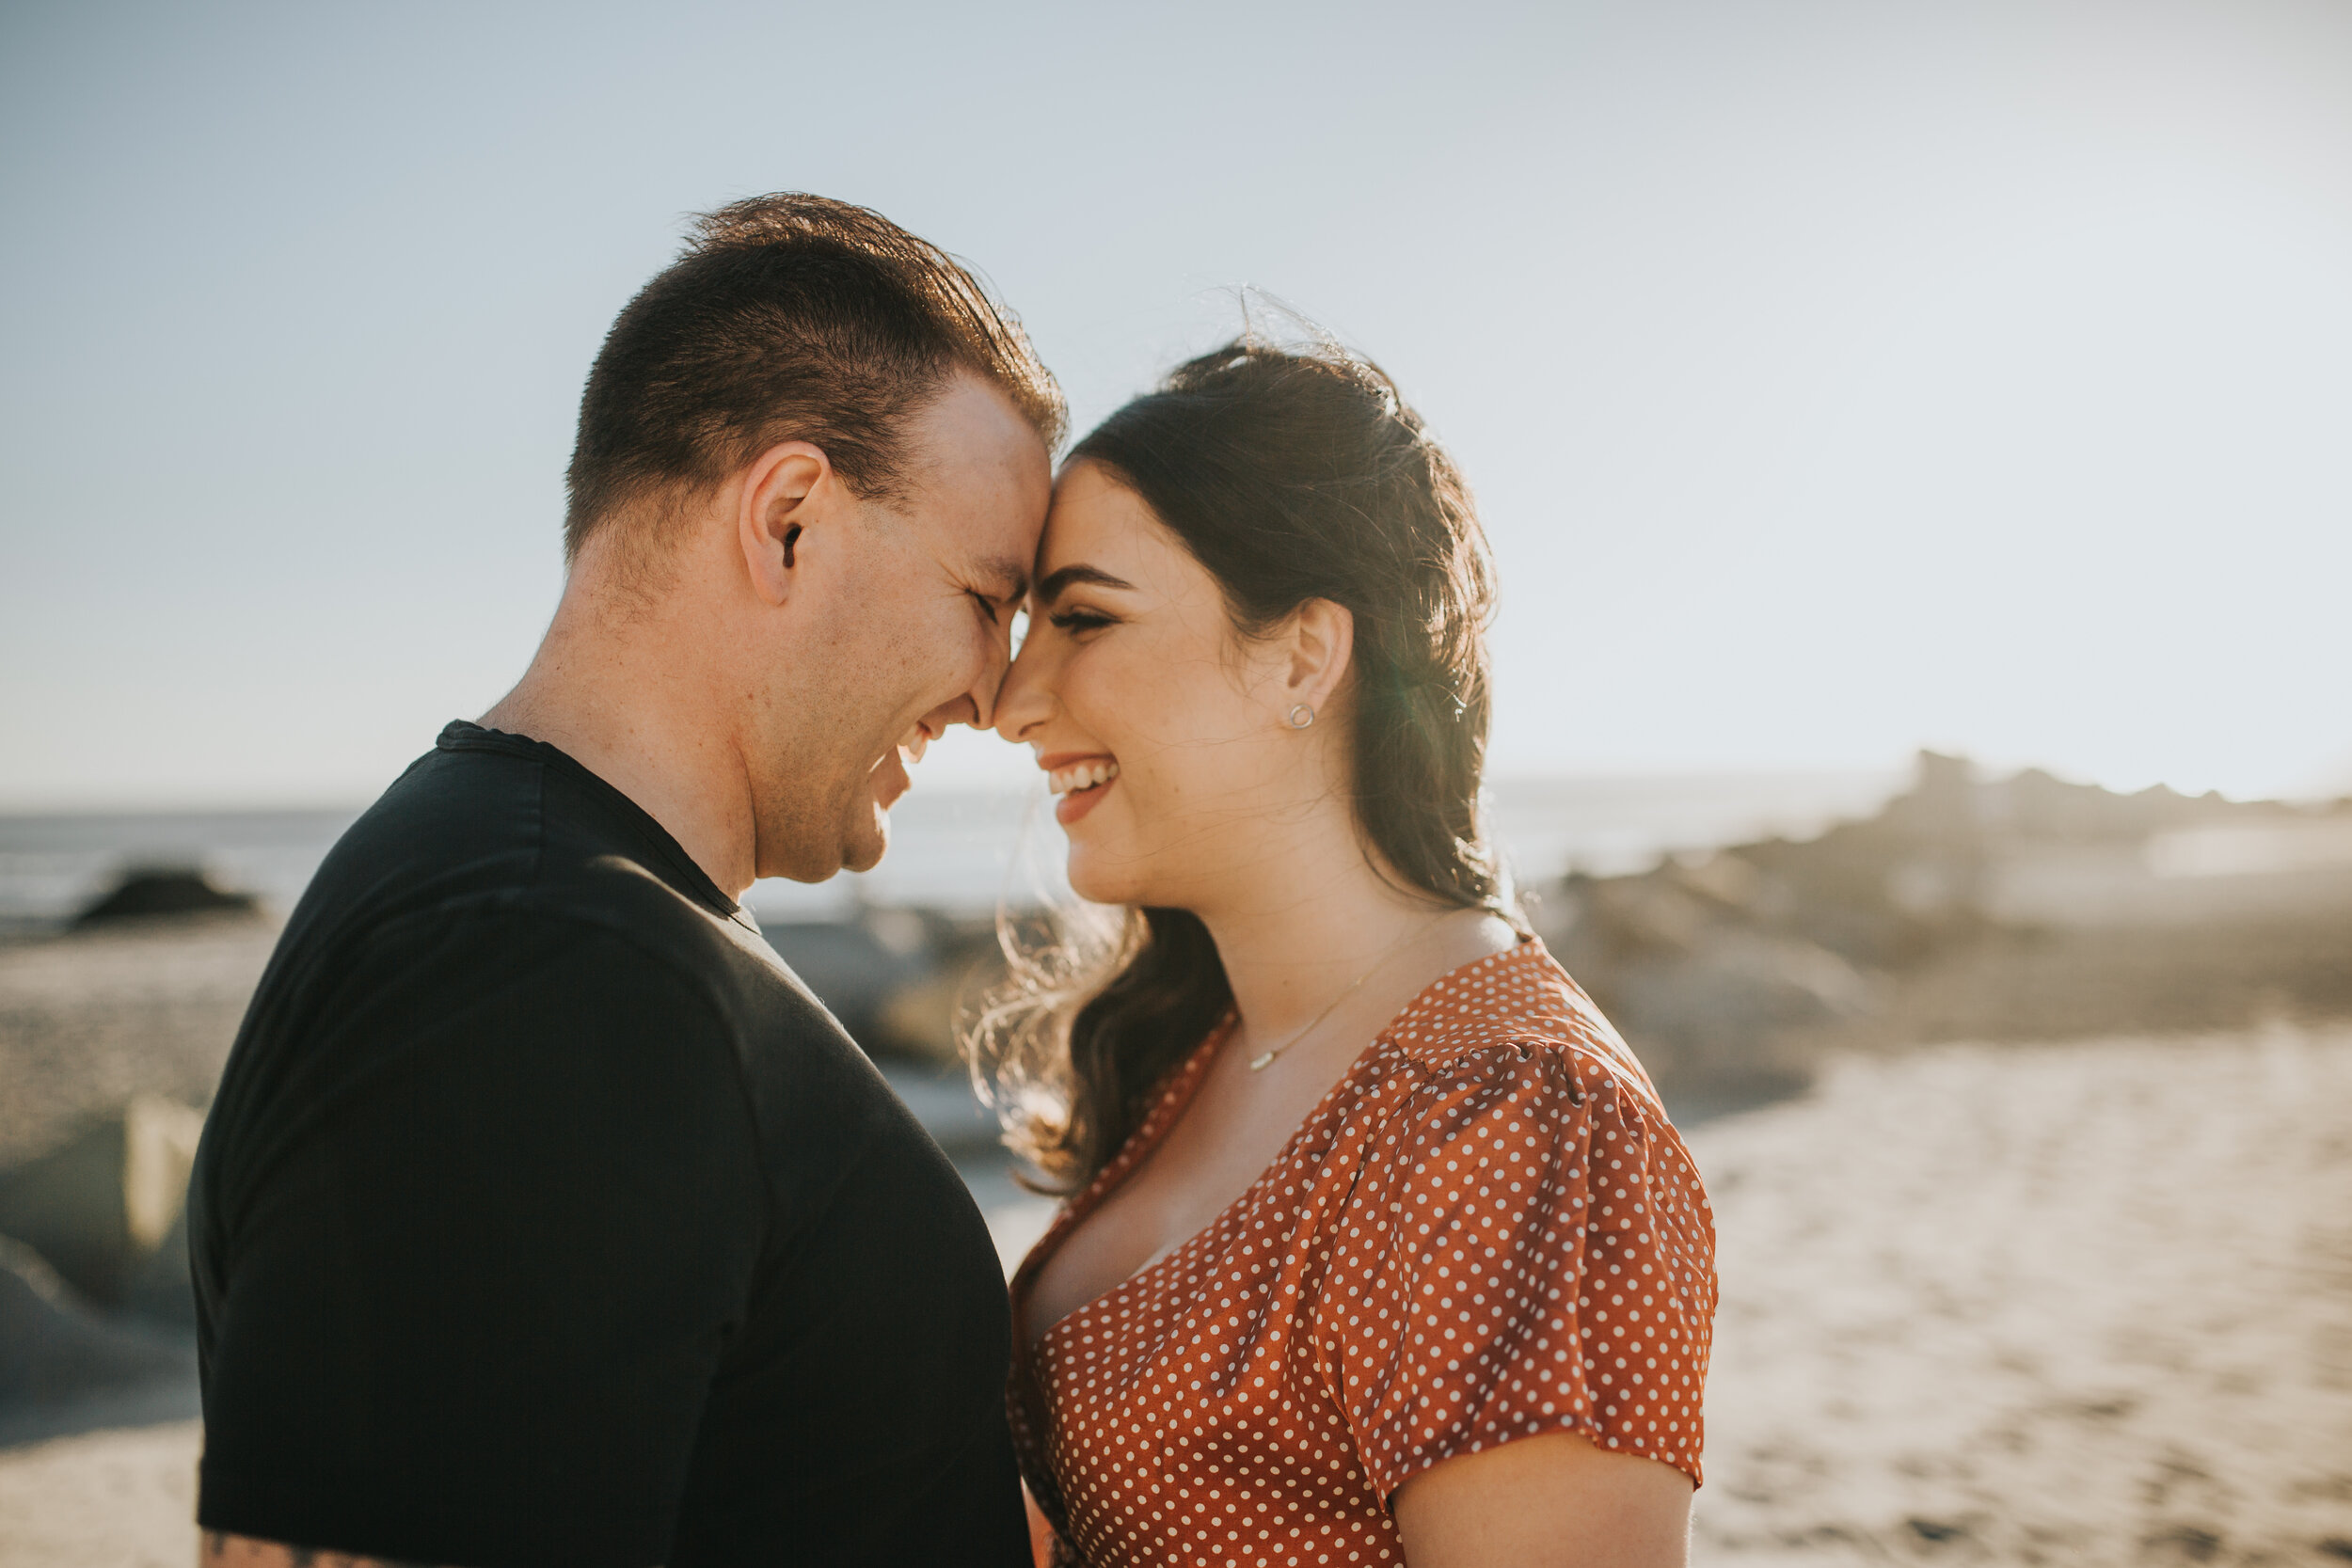 coronado-beach-engagement-session-valerielendvayphoto-008.jpg